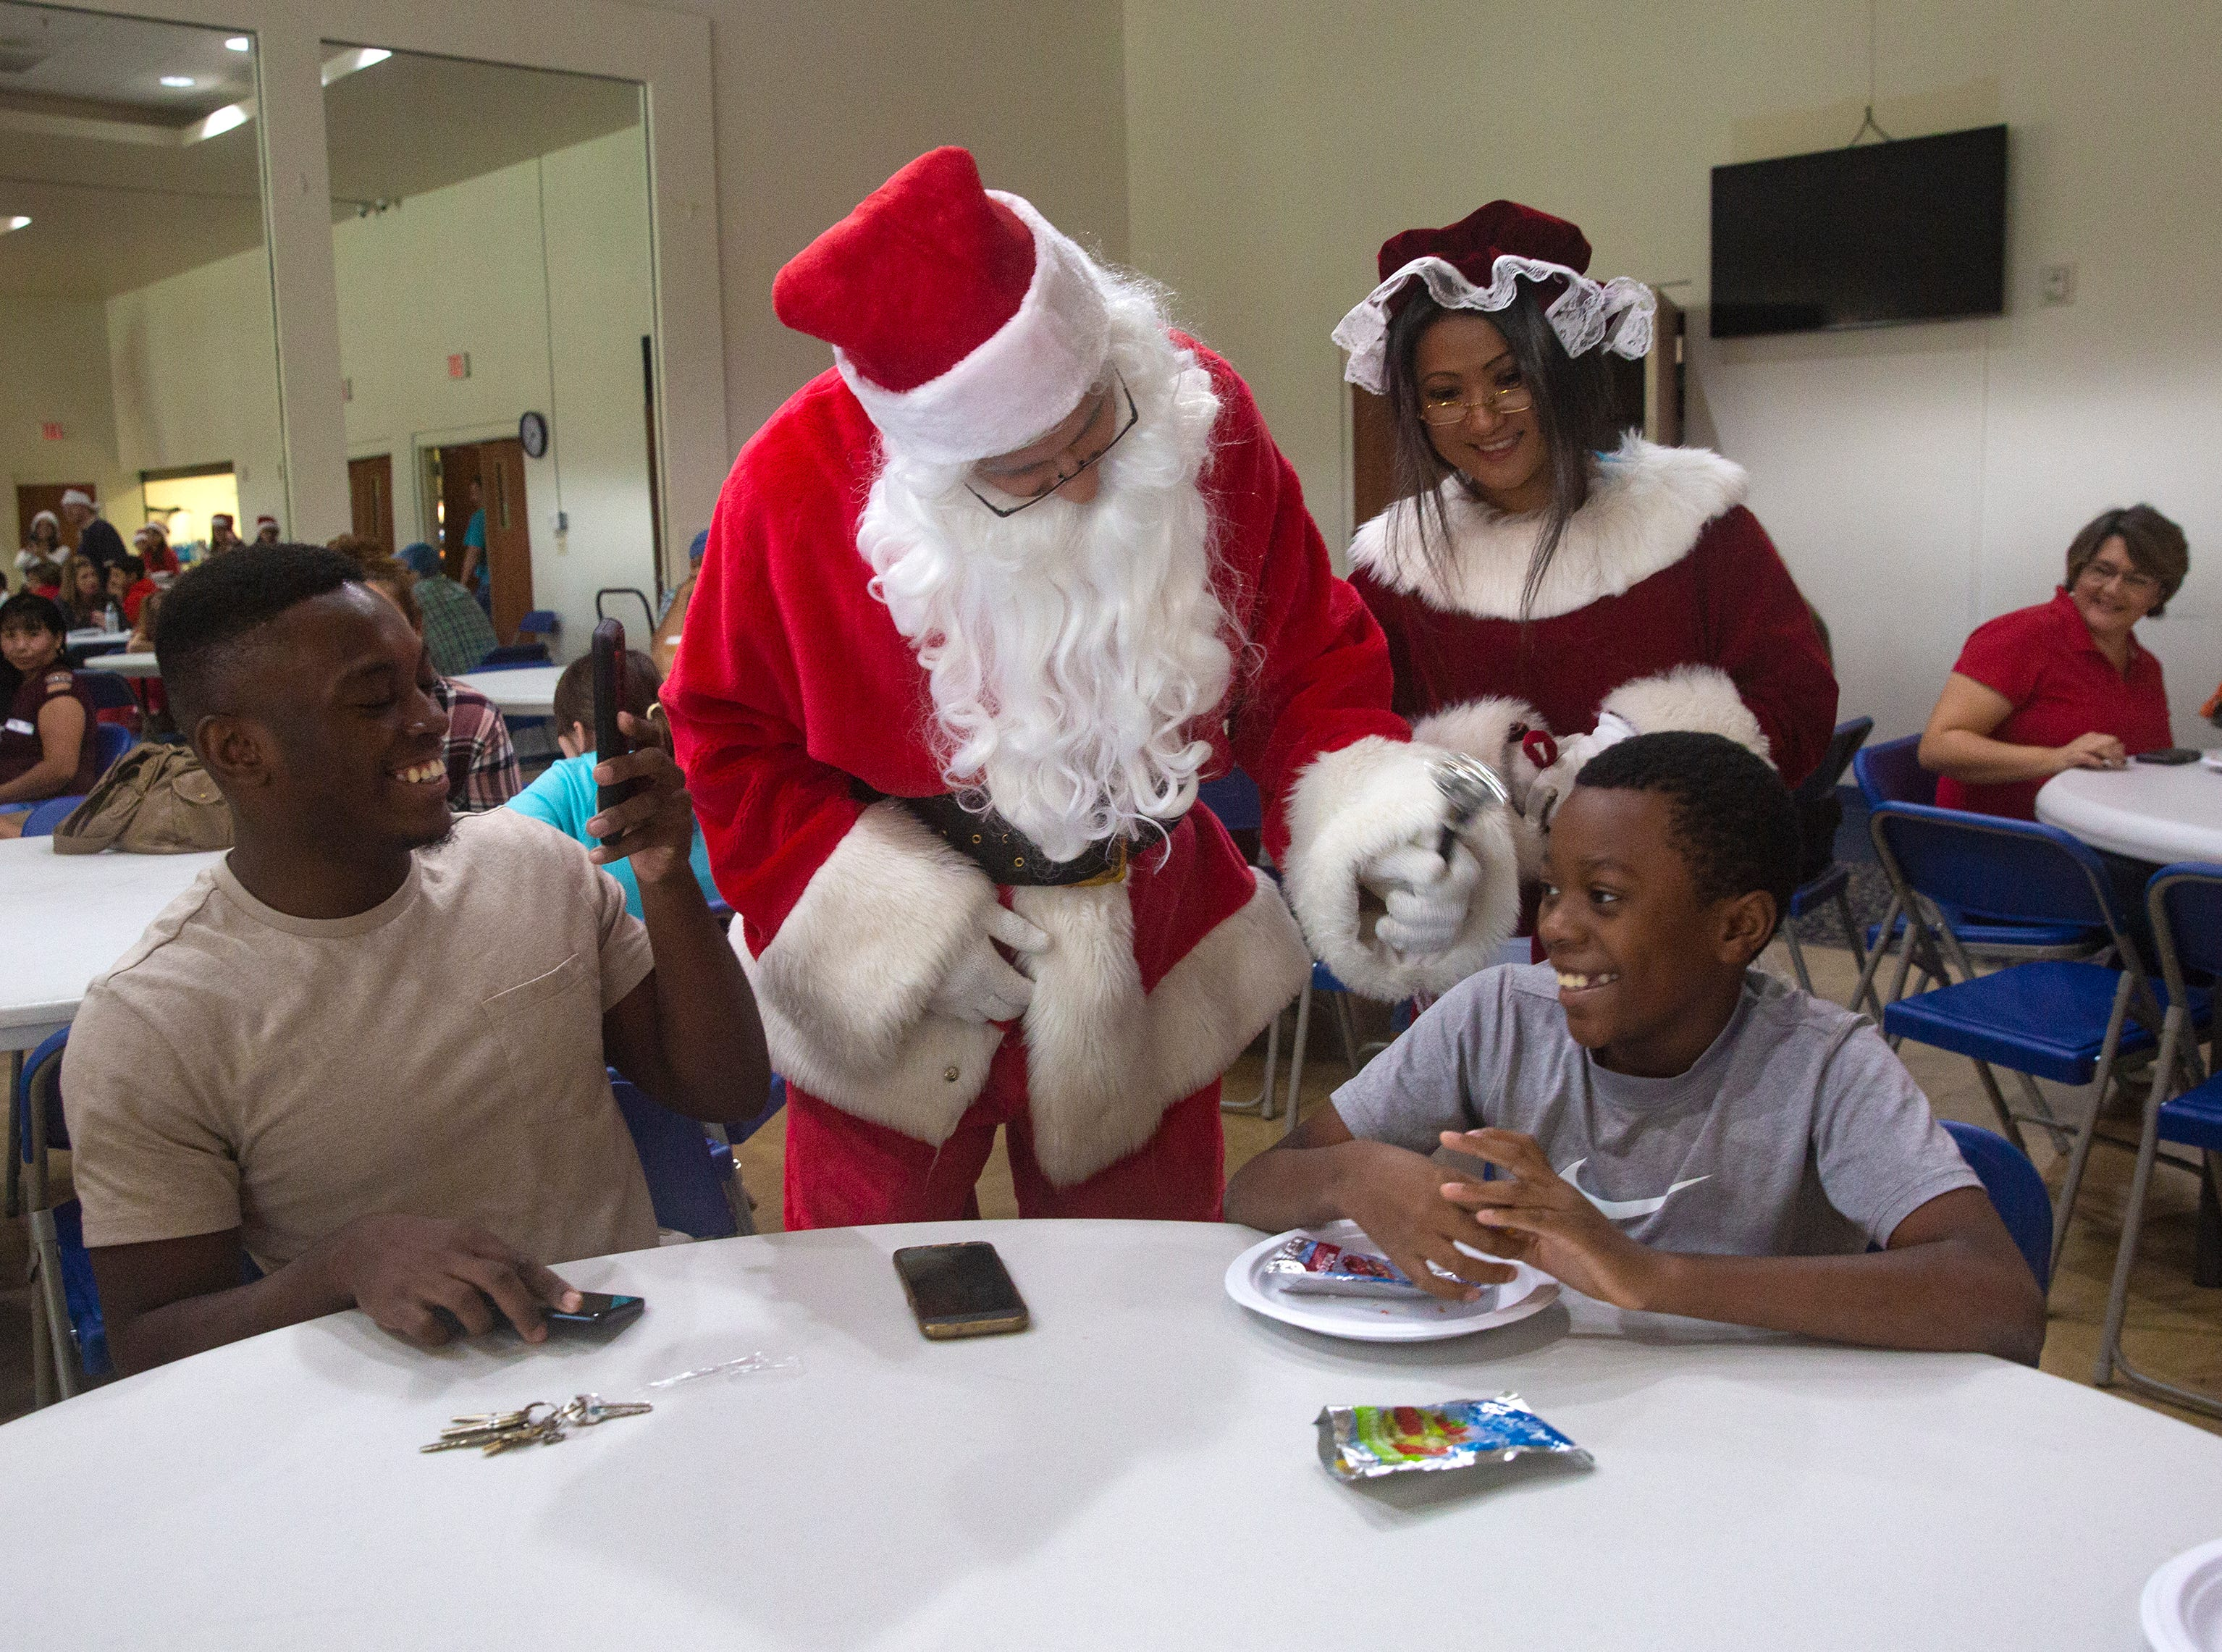 Hervangelot Lordeus, left, and his brother Delyn Jorame share a conversation with Mr. and Mrs. Santa Claus played  by Benny Vasquez and his wife Kelly Vasquez during a charitable event hosted by the Fraternal Order of Police, Lodge 38 at the River Park Community Center, Saturday, Dec. 22, 2018 in Naples.